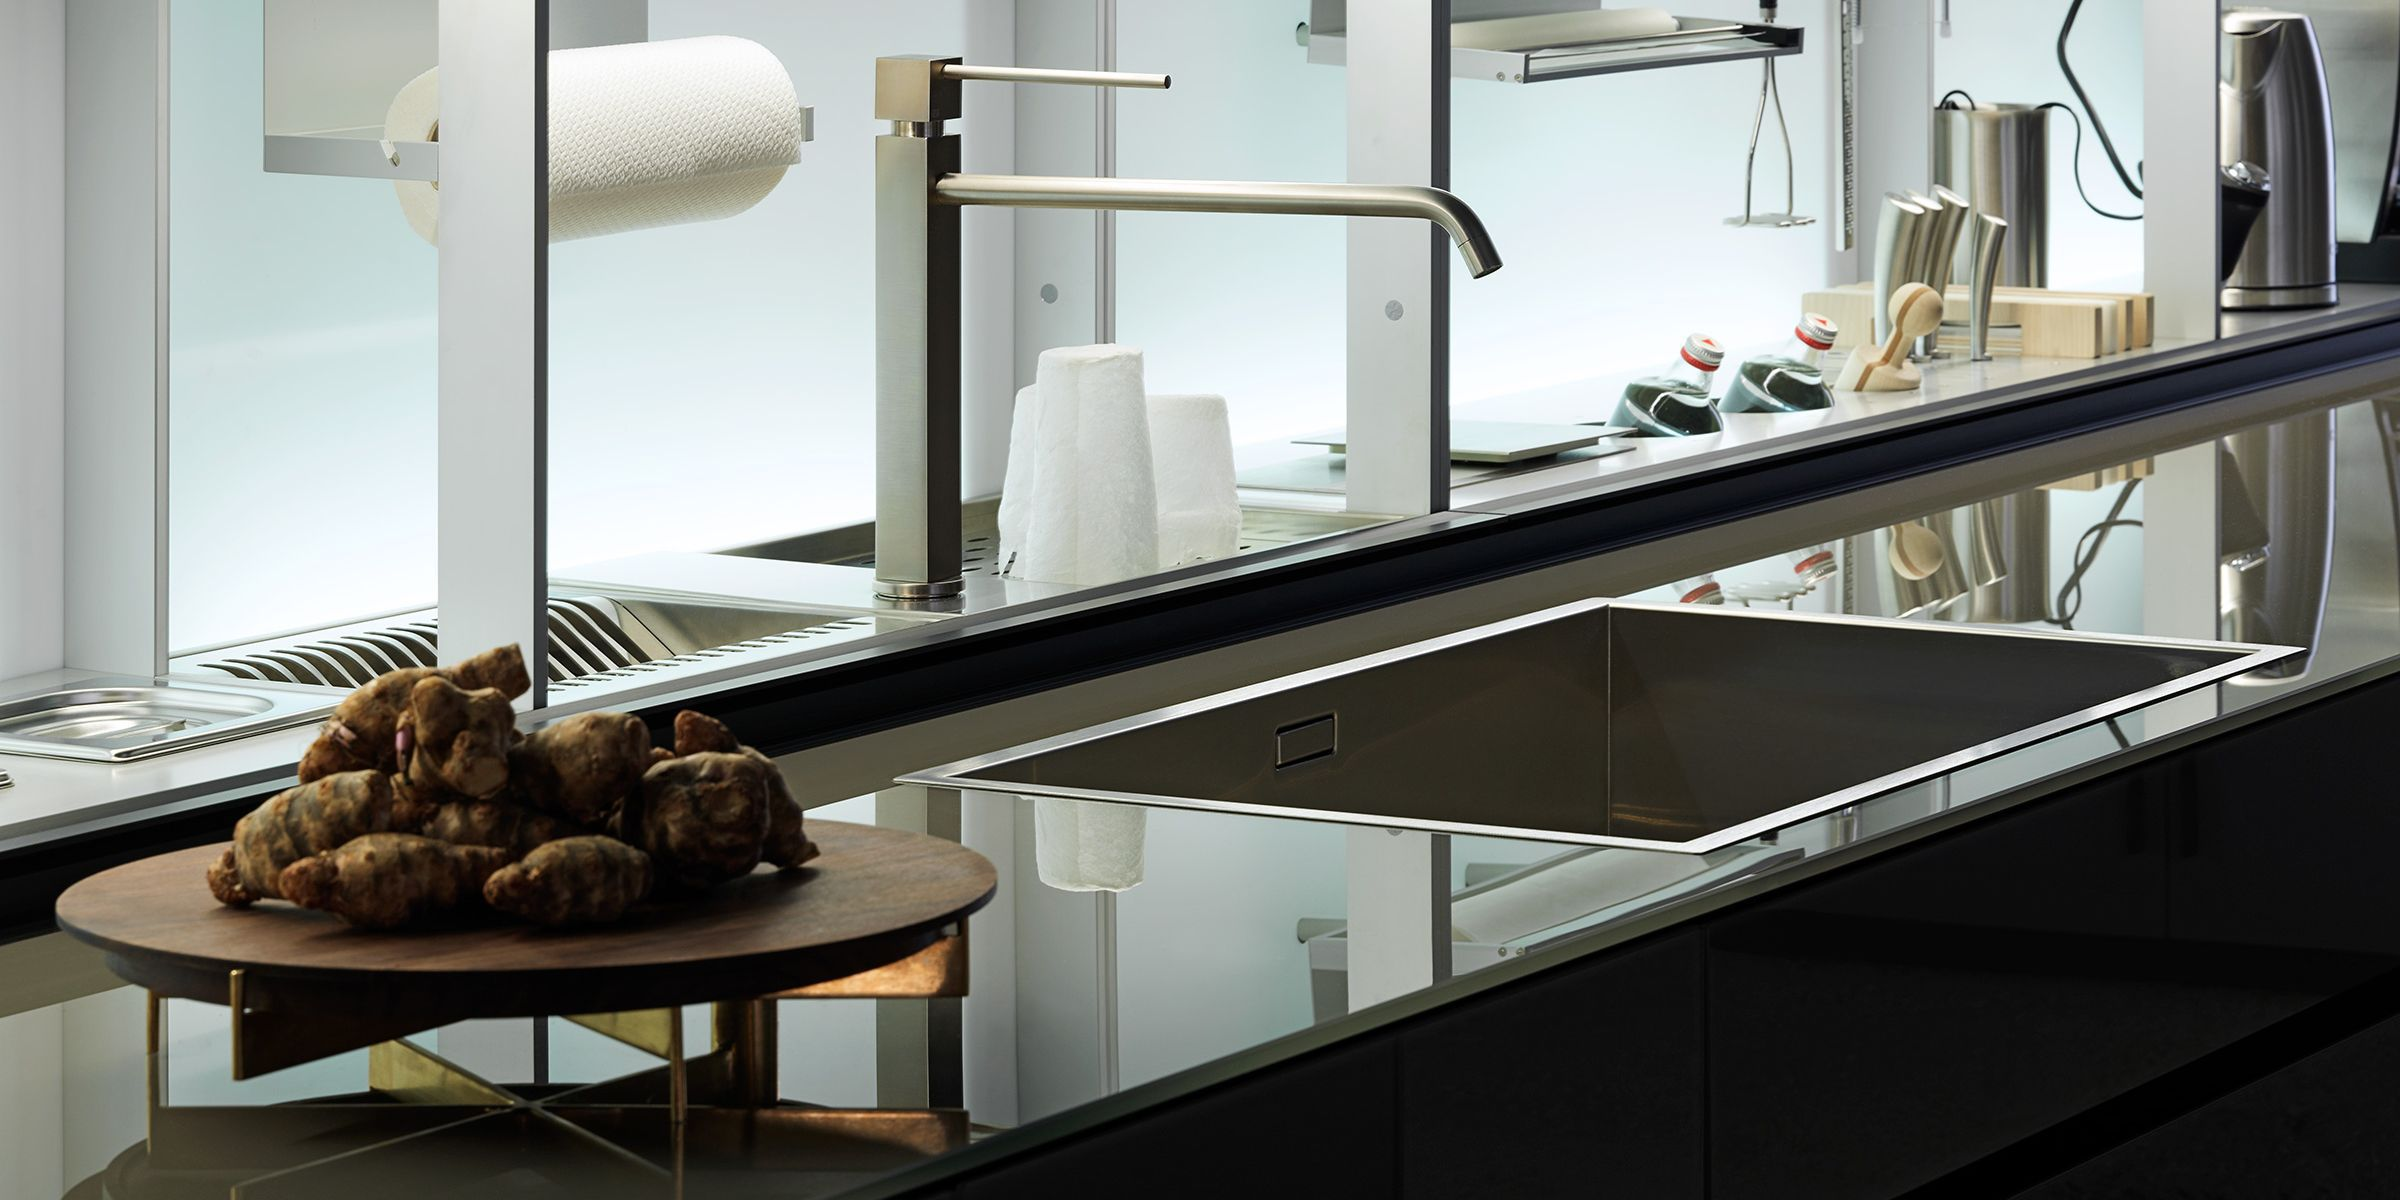 Contemporary kitchen / lacquered wood / glass / aluminum ...